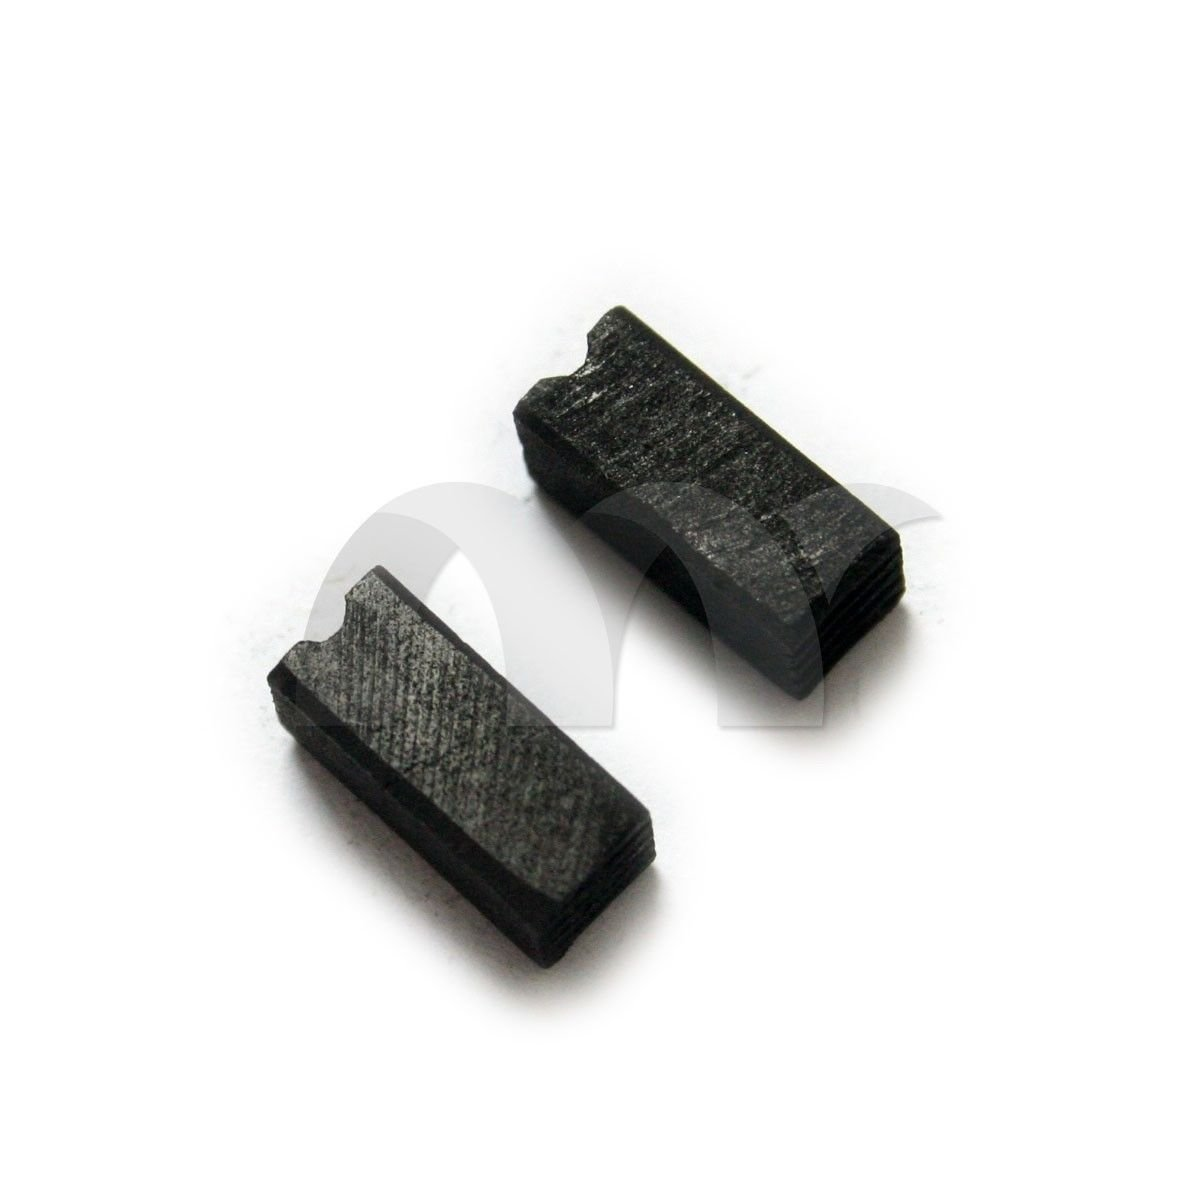 Eztronics Corp/® Carbon Motor Brushes Replacement for Dremel Power Rotary Tool Accessories 11x6x4.8mm 11.1x5.3x4.9mm 9.6x5.6x5mm 9.7x6.5x5.6mm 11.5x6x5mm 8.2x4.8x4.8mm 90828(11.5x6x5mm)